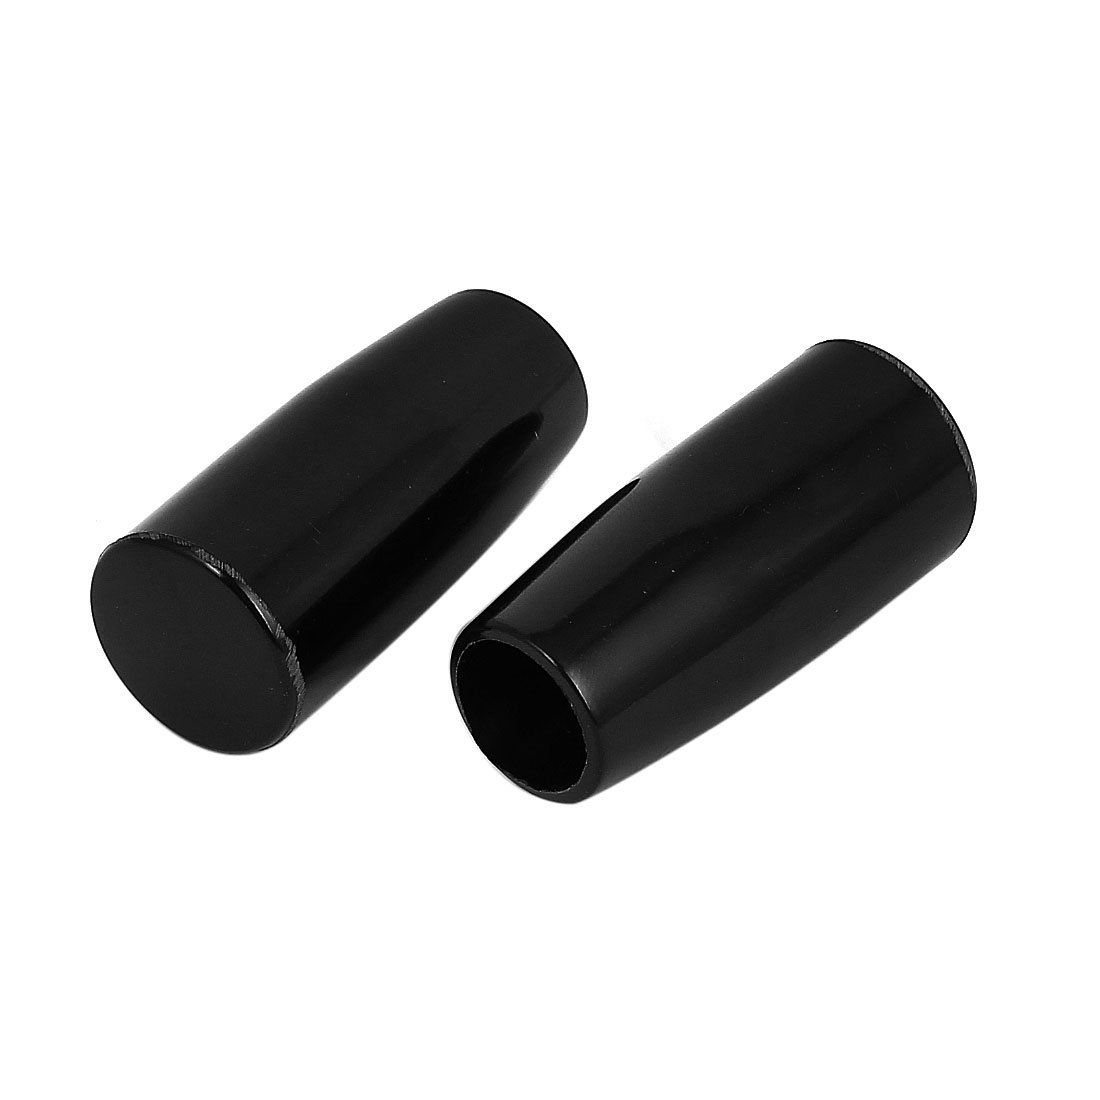 M8 Female Thread 40mm Long Plastic Handwheel Taper Grip Handle 2pcs